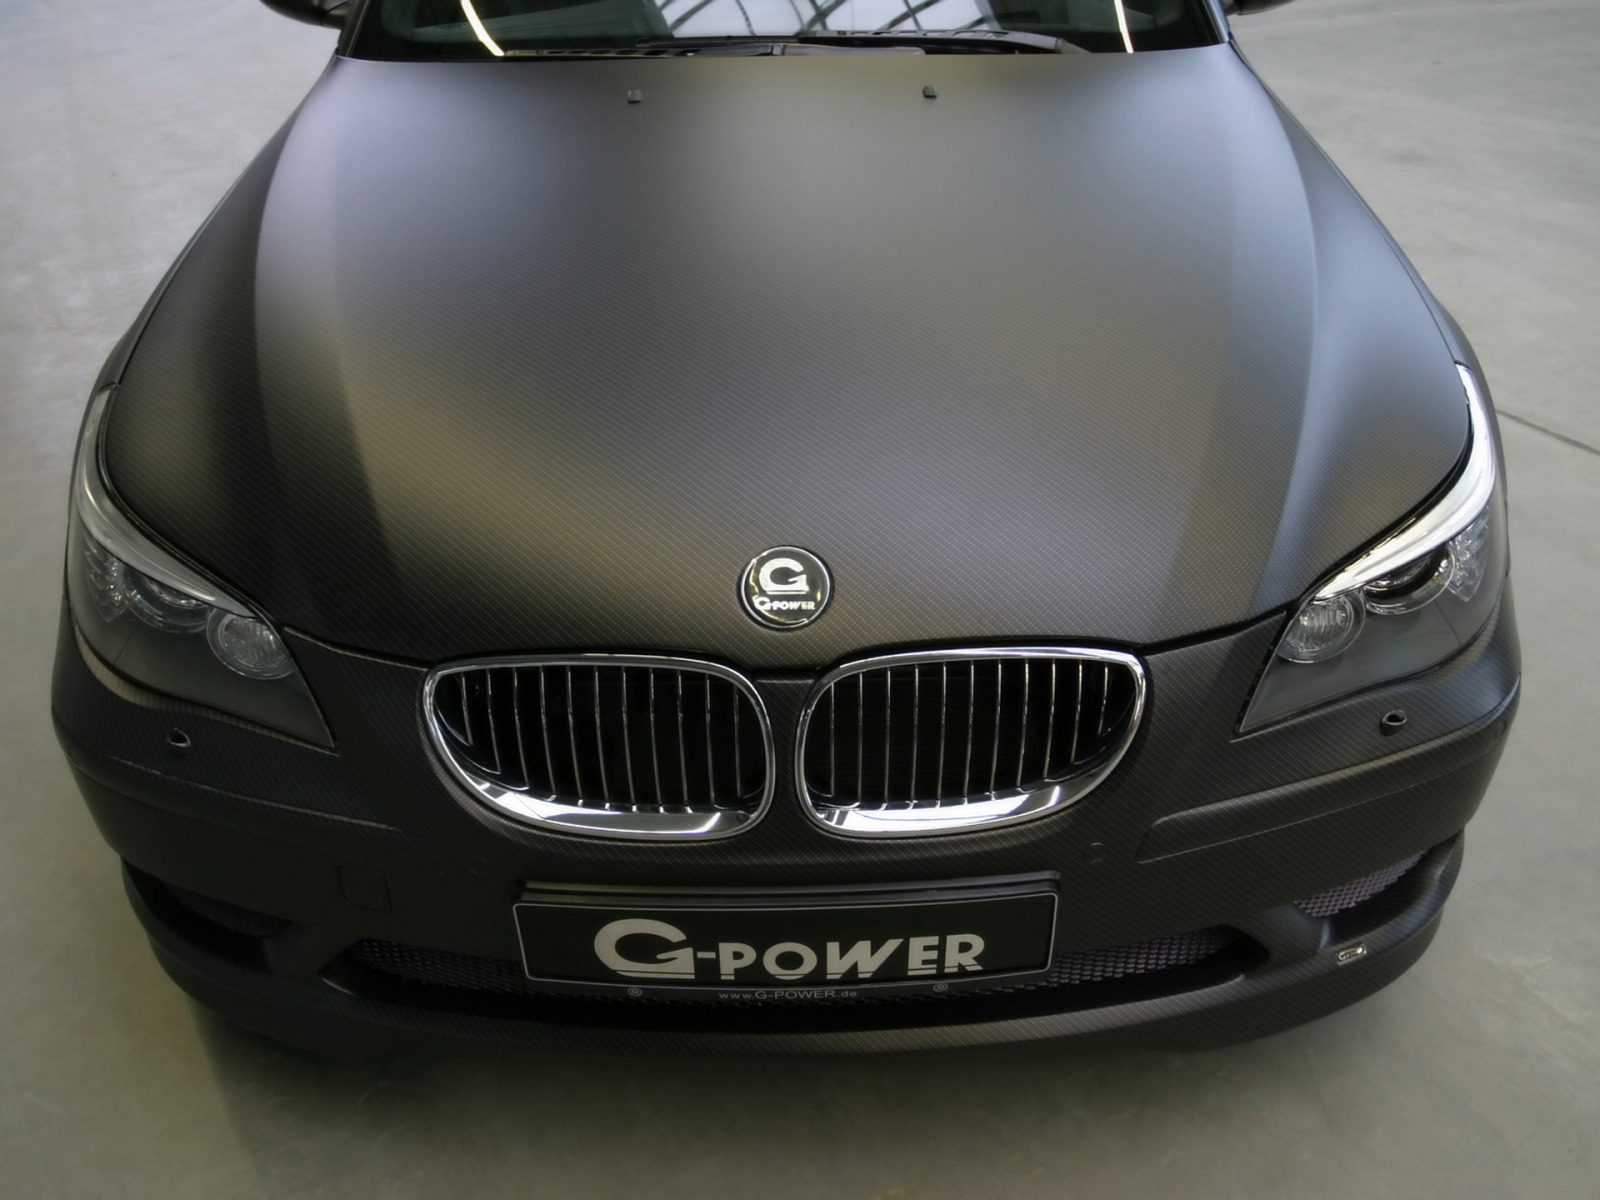 G Power Bmw M5 Hurricane Rs Wallpaper Bmw Cars Wallpapers In Jpg